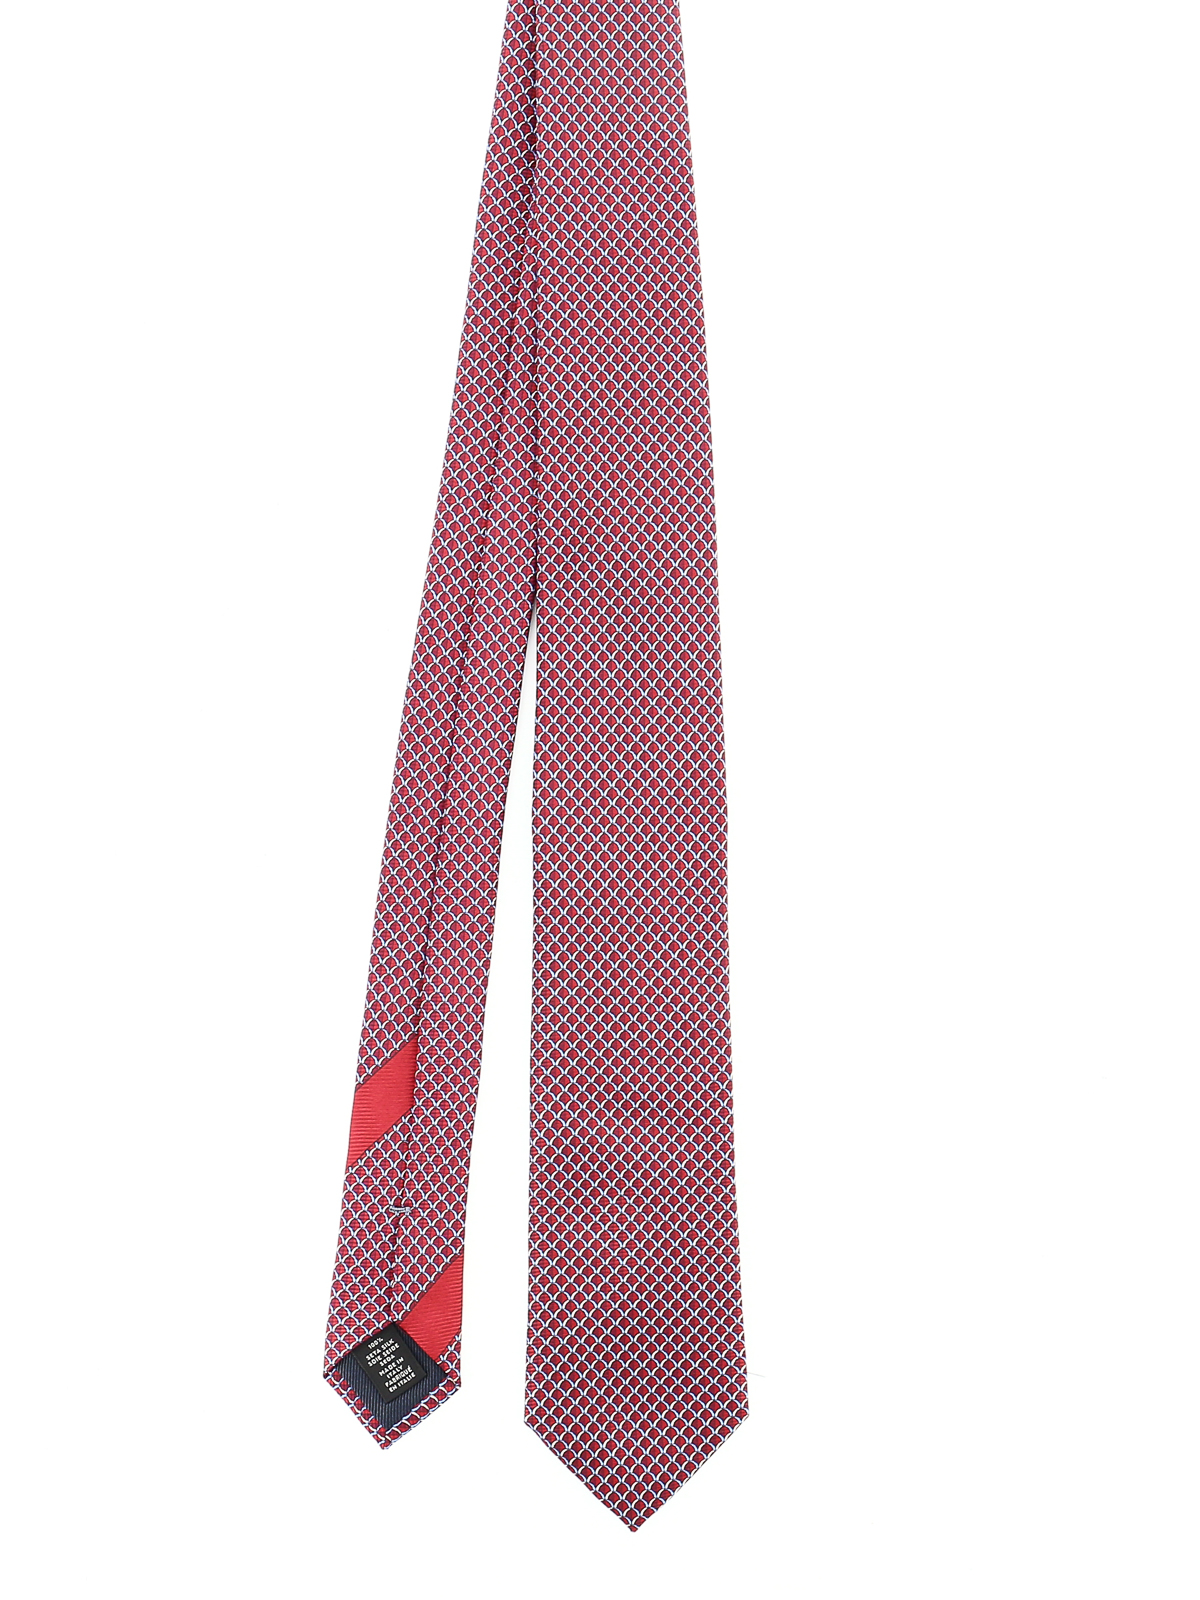 Ermenegildo Zegna SCALES PATTERNED TIE